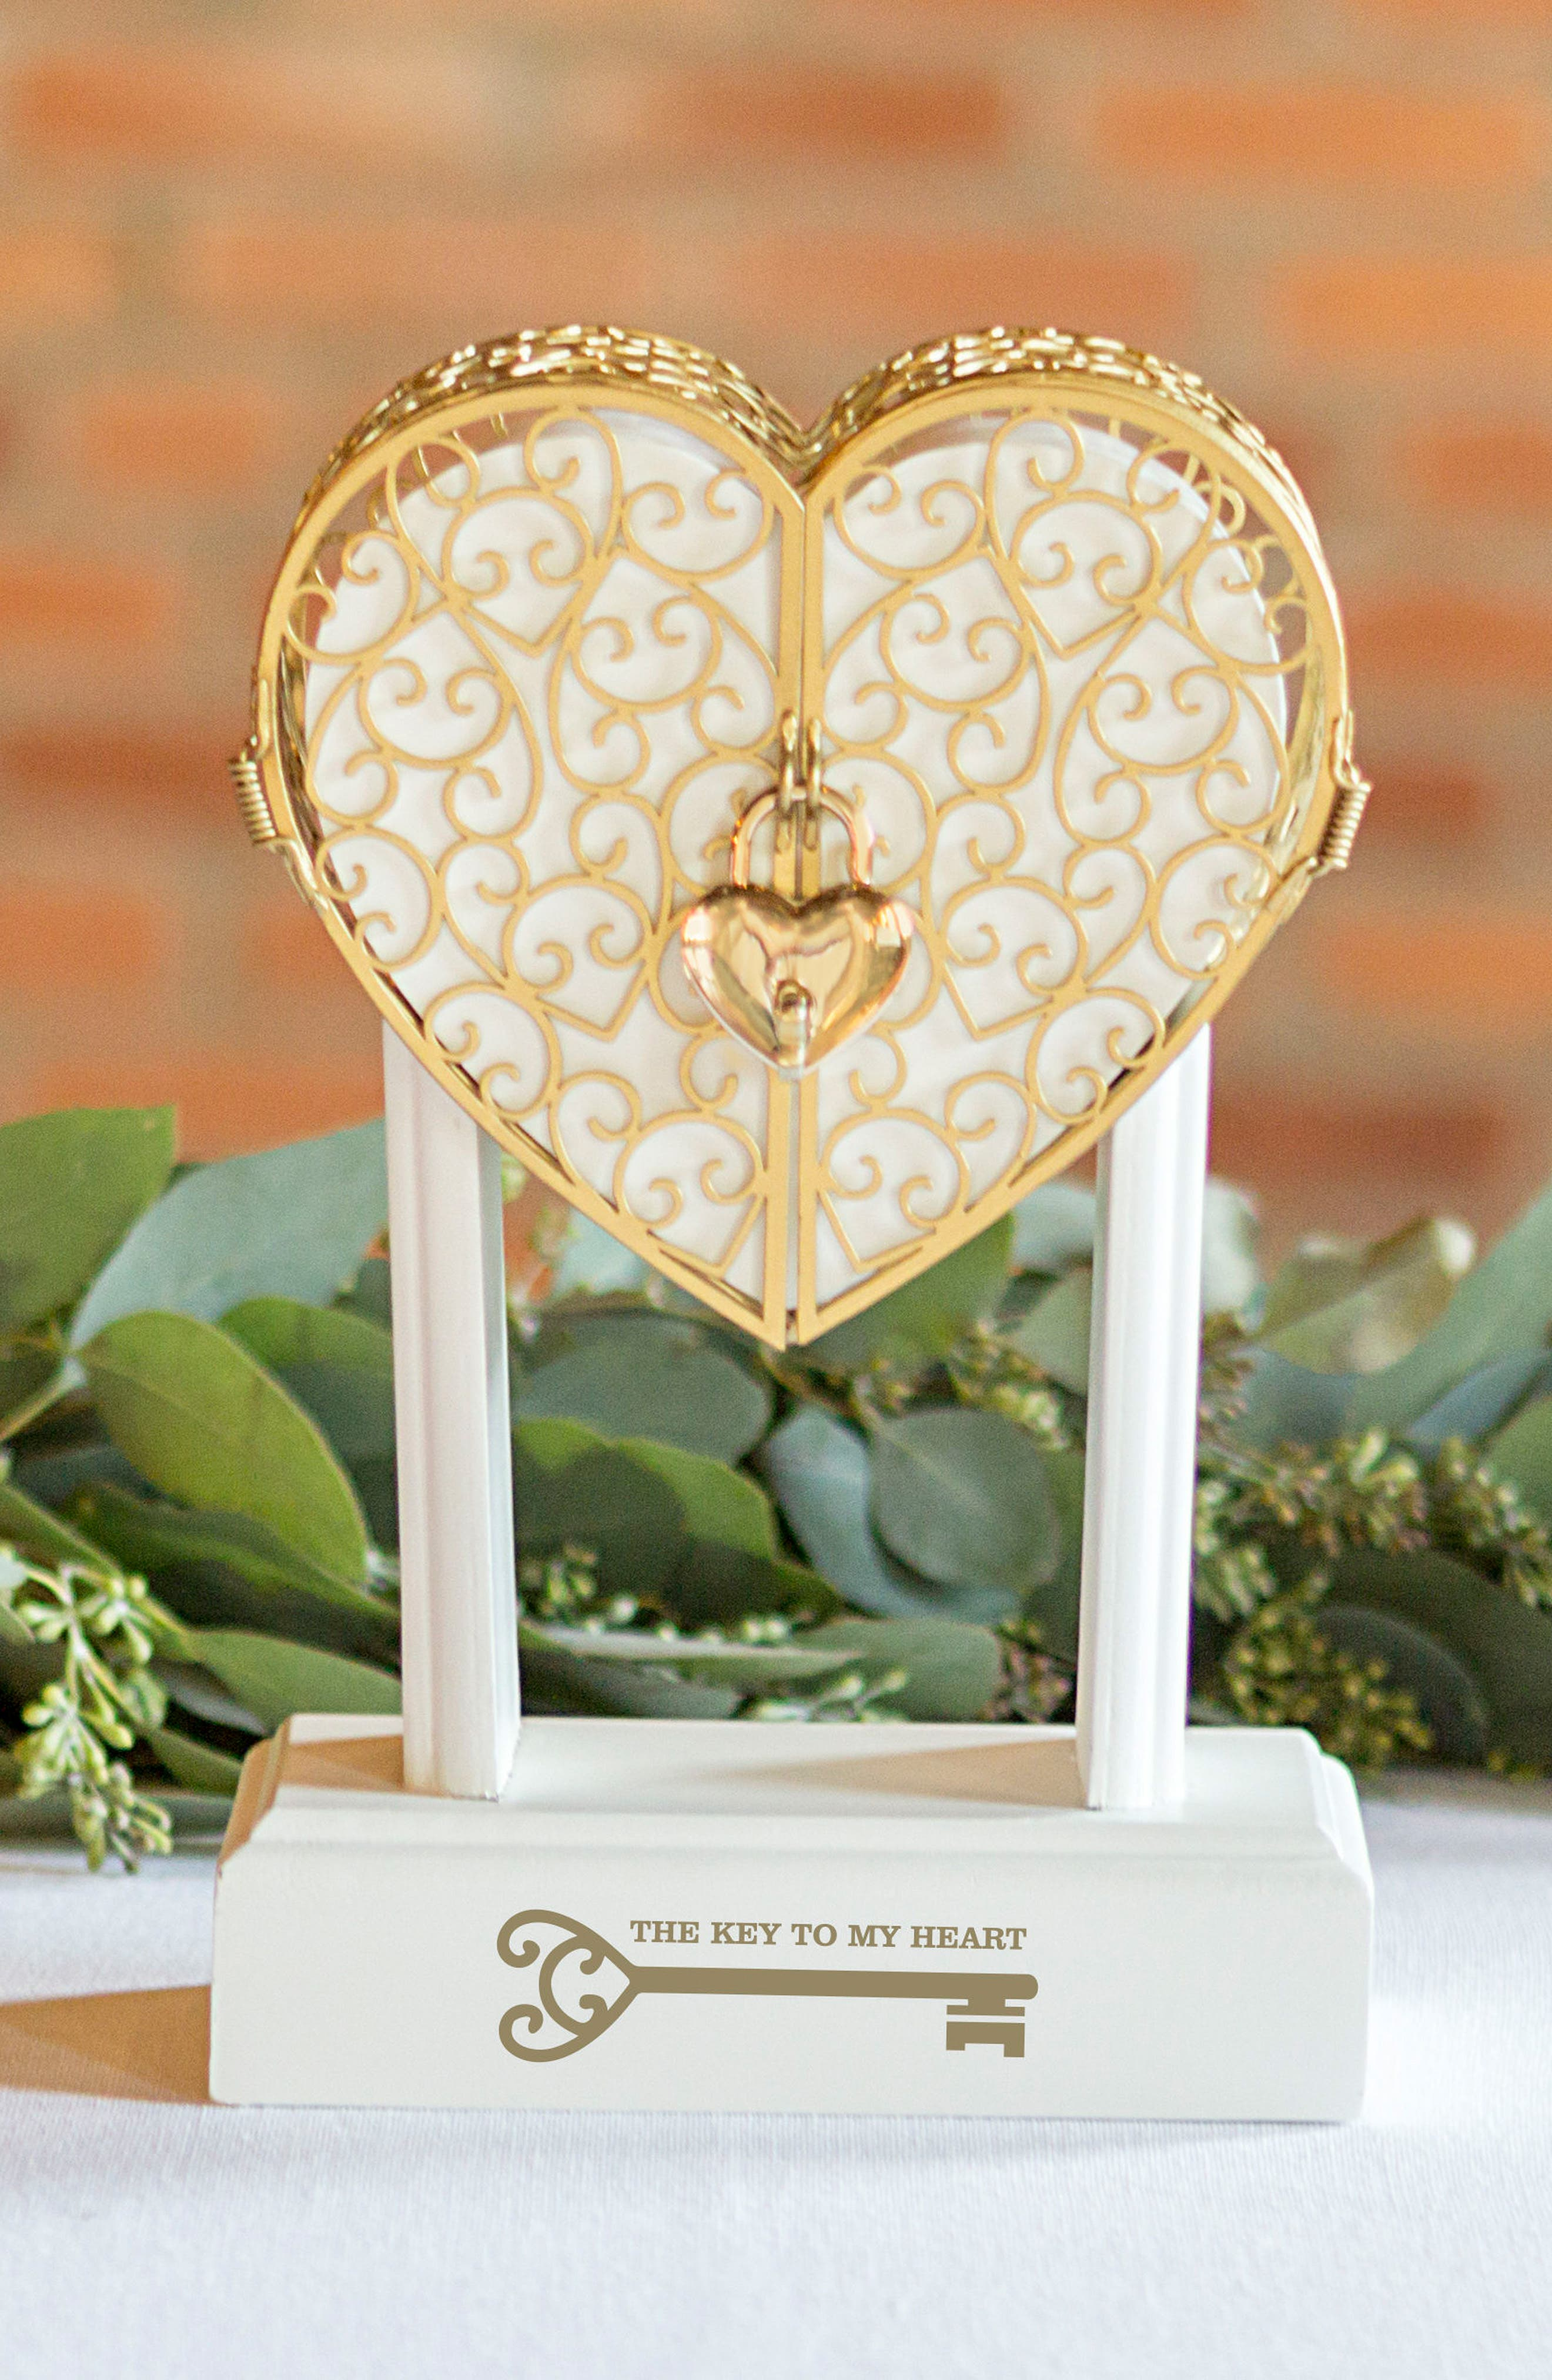 Key To My Heart Vow Unity Keepsake Box,                             Alternate thumbnail 10, color,                             710